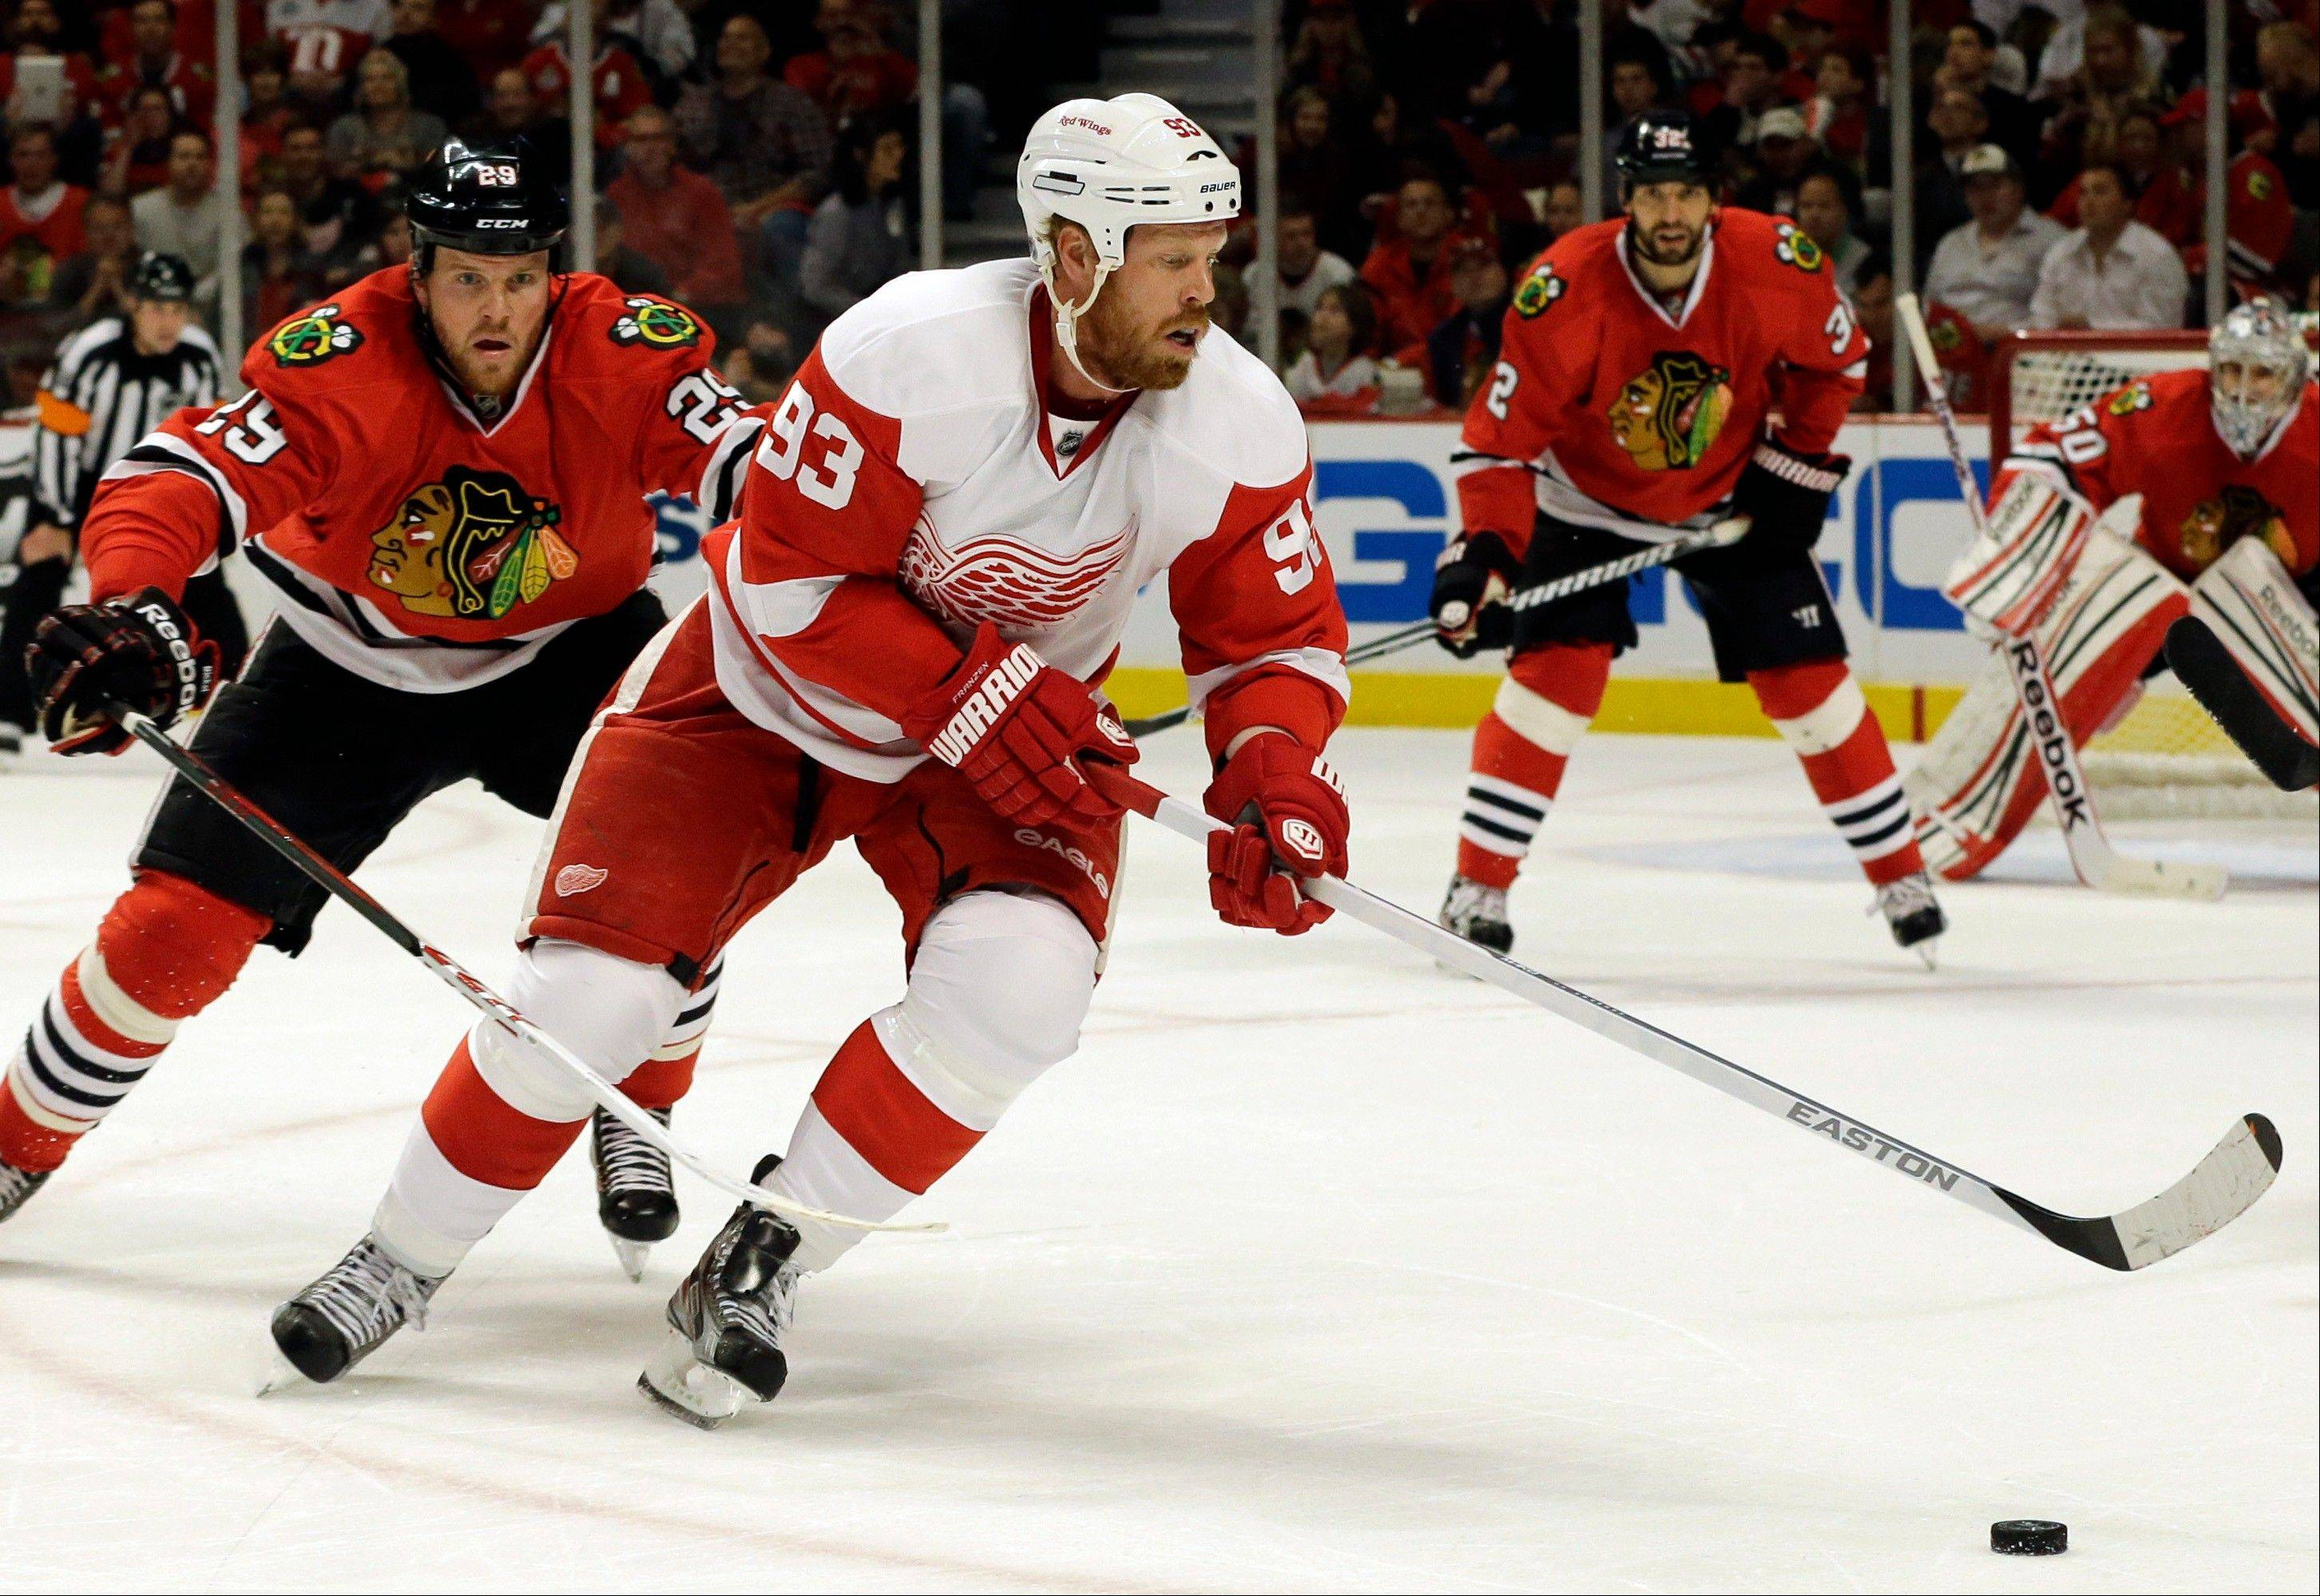 Detroit Red Wings' Johan Franzen (93) controls the puck against Chicago Blackhawks' Bryan Bickell (29) during the first period of Game 5 of the NHL hockey Stanley Cup playoffs Western Conference semifinals in Chicago, Saturday, May 25, 2013.